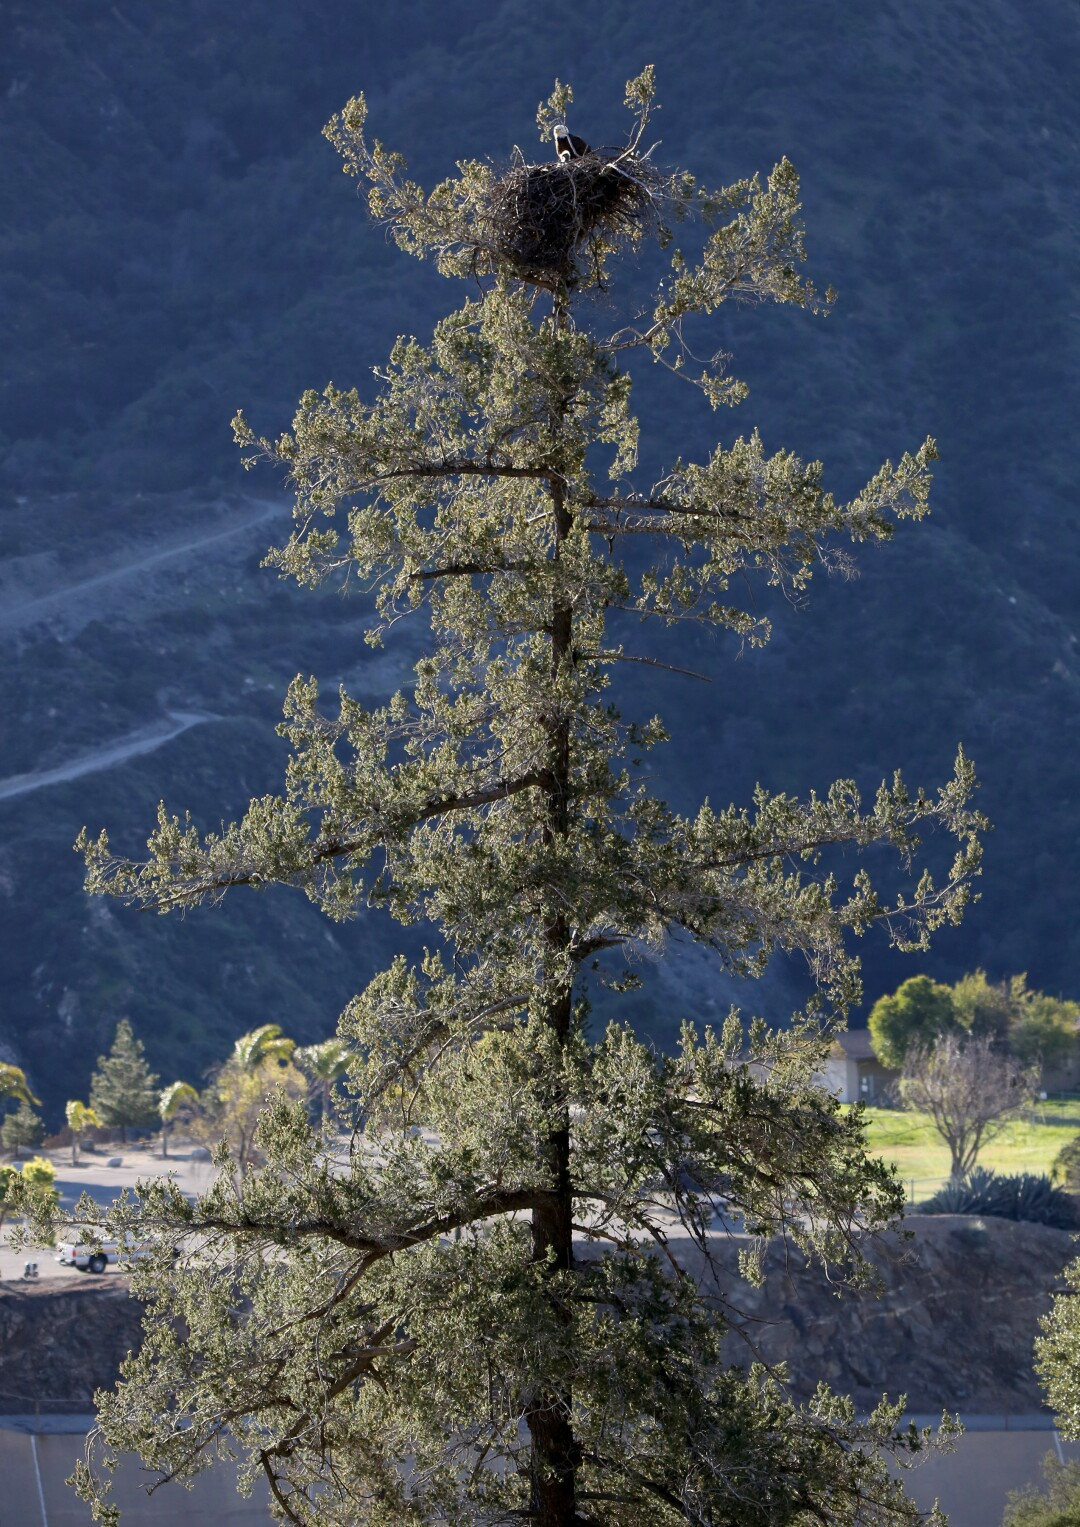 Bald eagles nesting in the Angeles National Forest